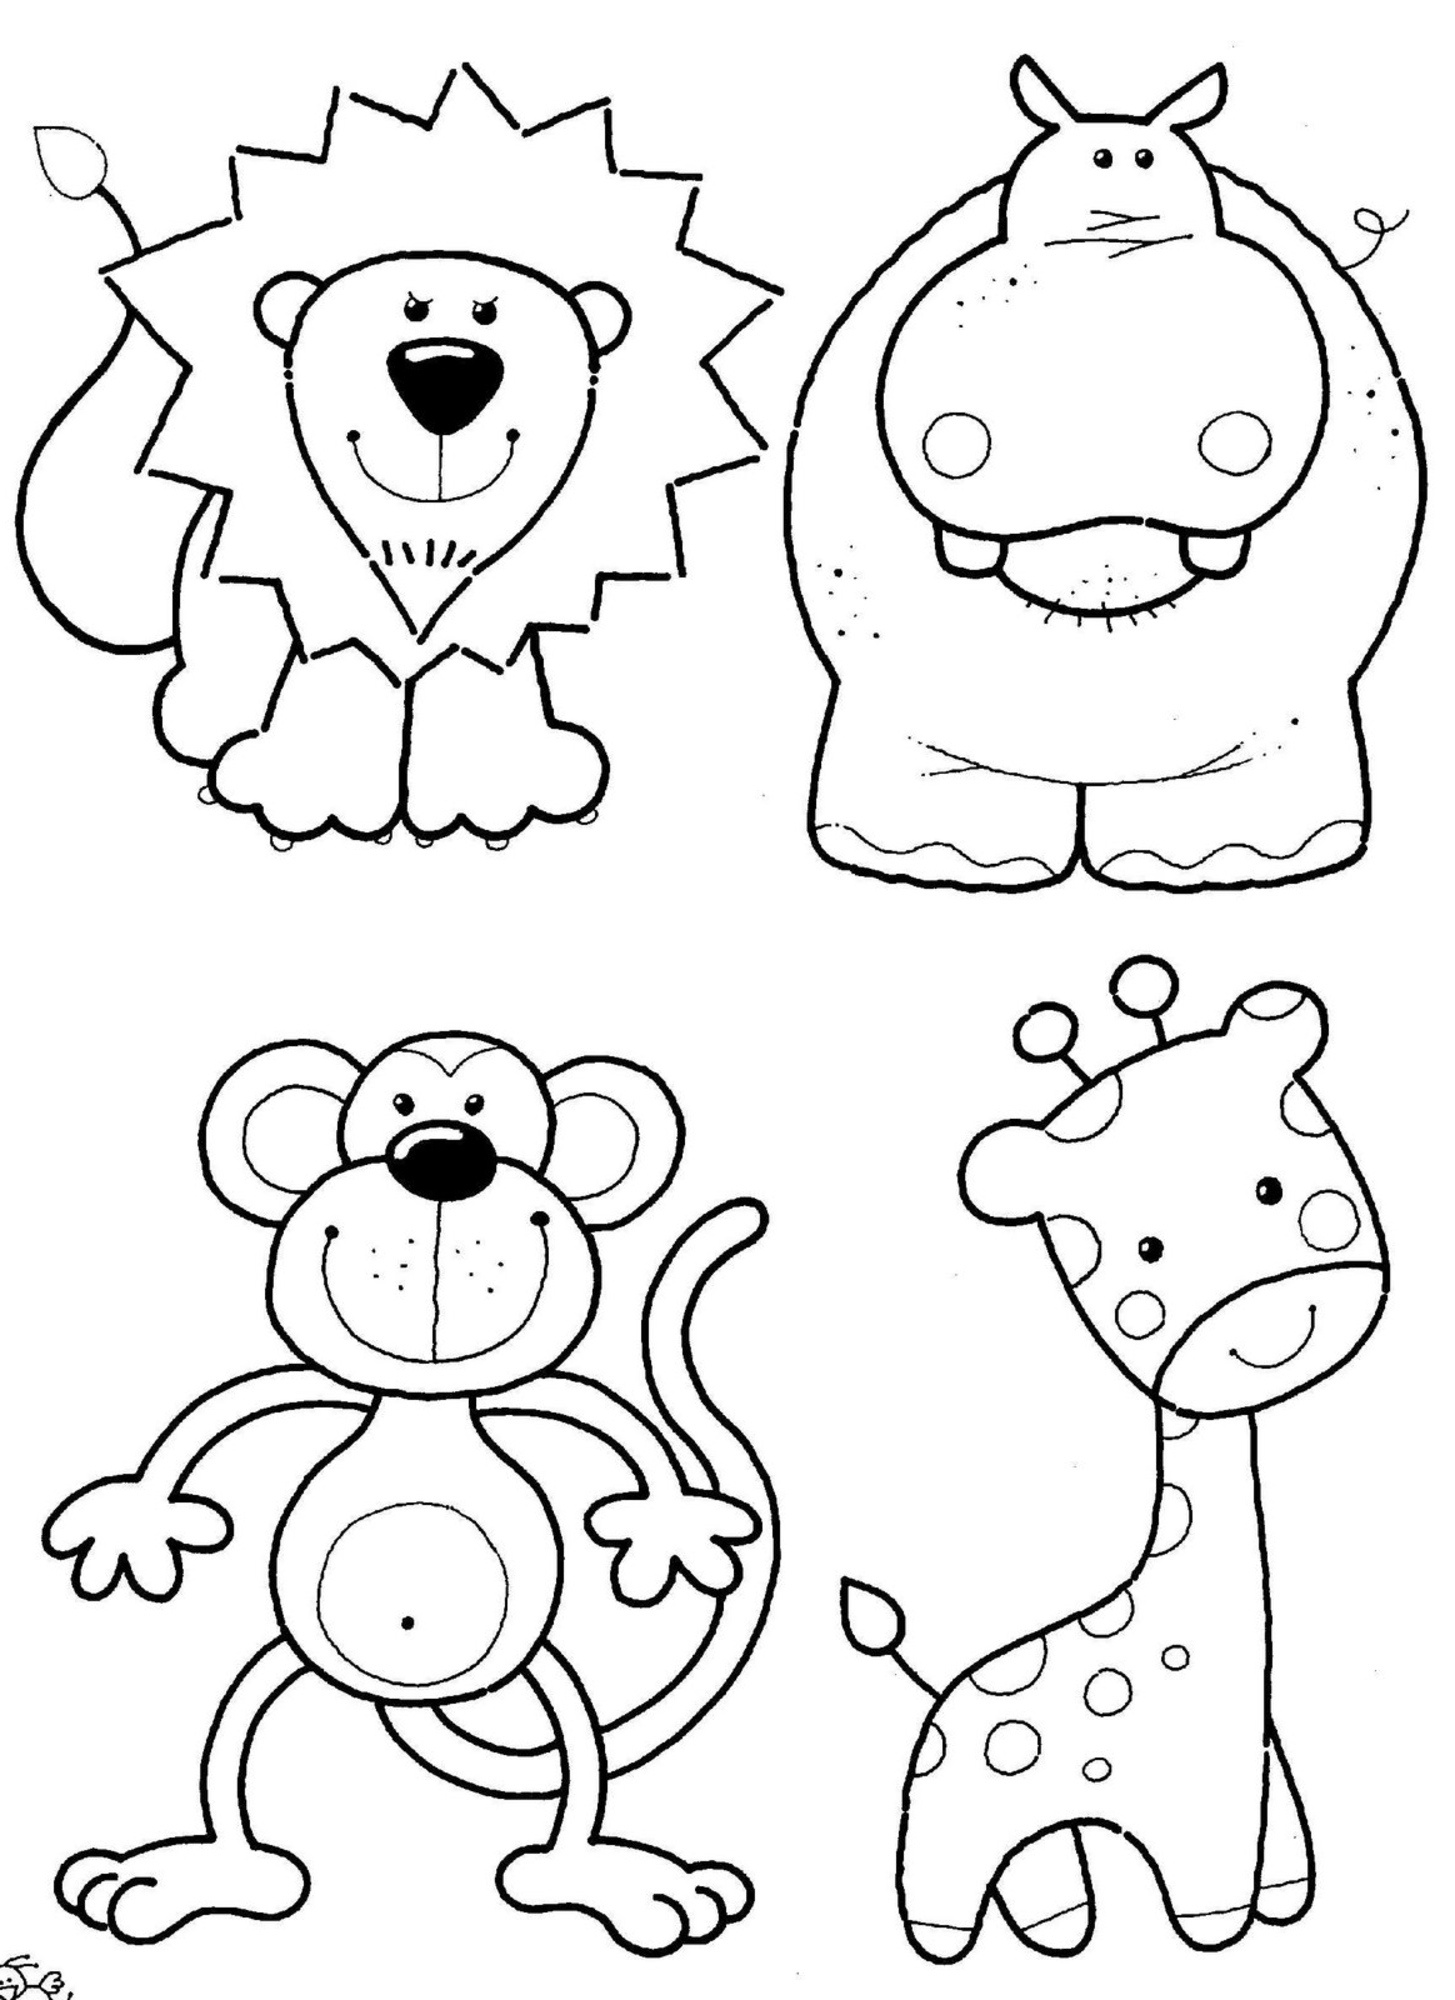 zoo animal coloring pages to print 51 printable zoo animal coloring sheets zoo animal print zoo to coloring pages animal